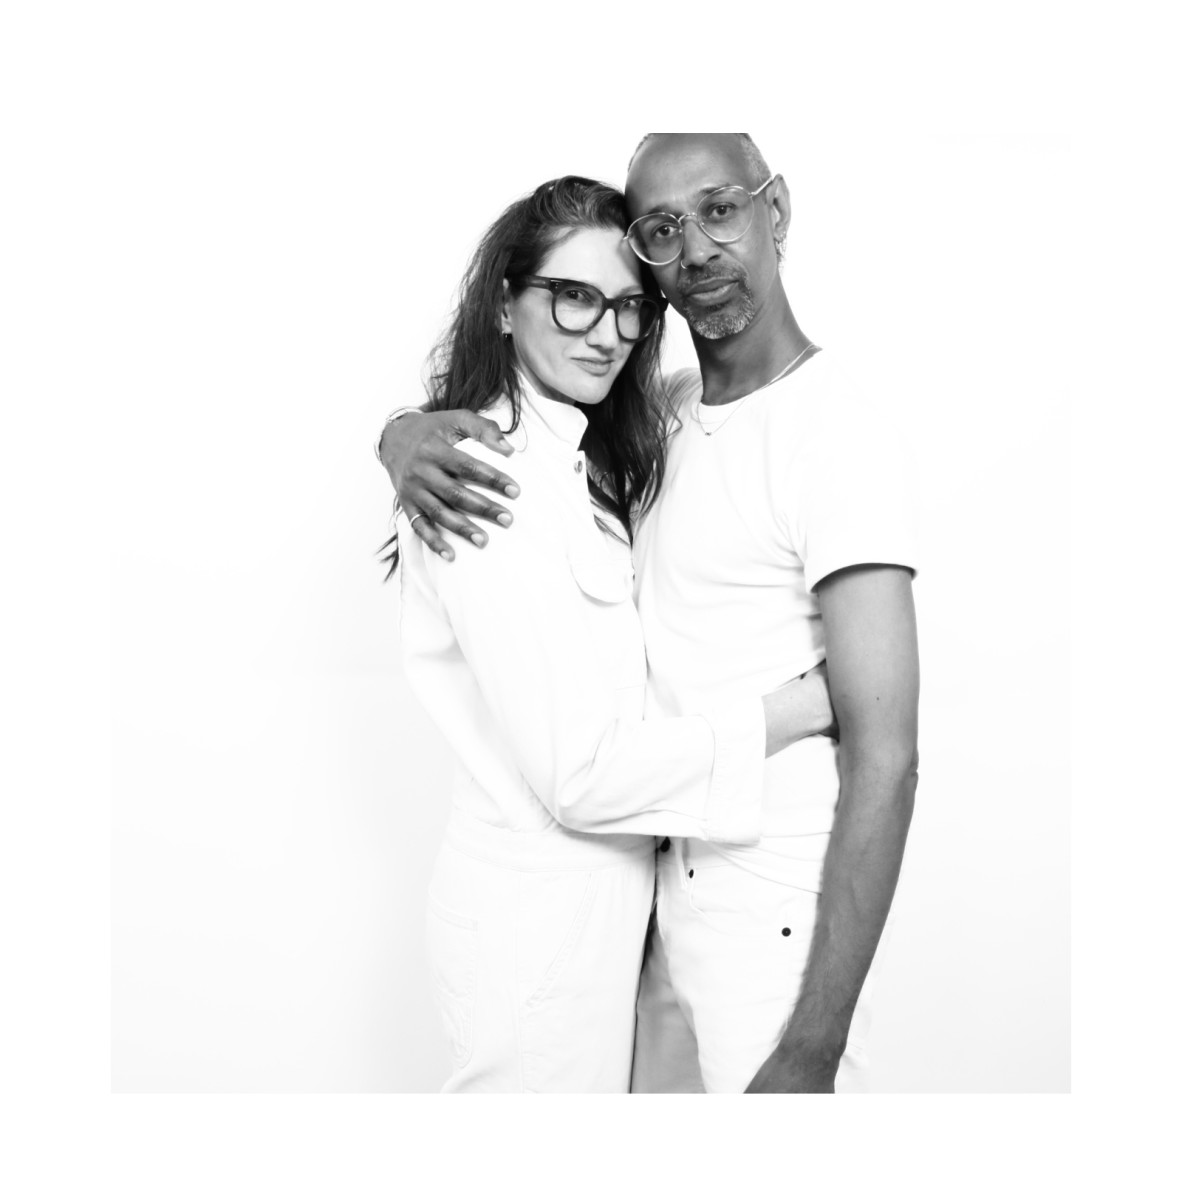 Jenna Lyons and Troi Ollivierre